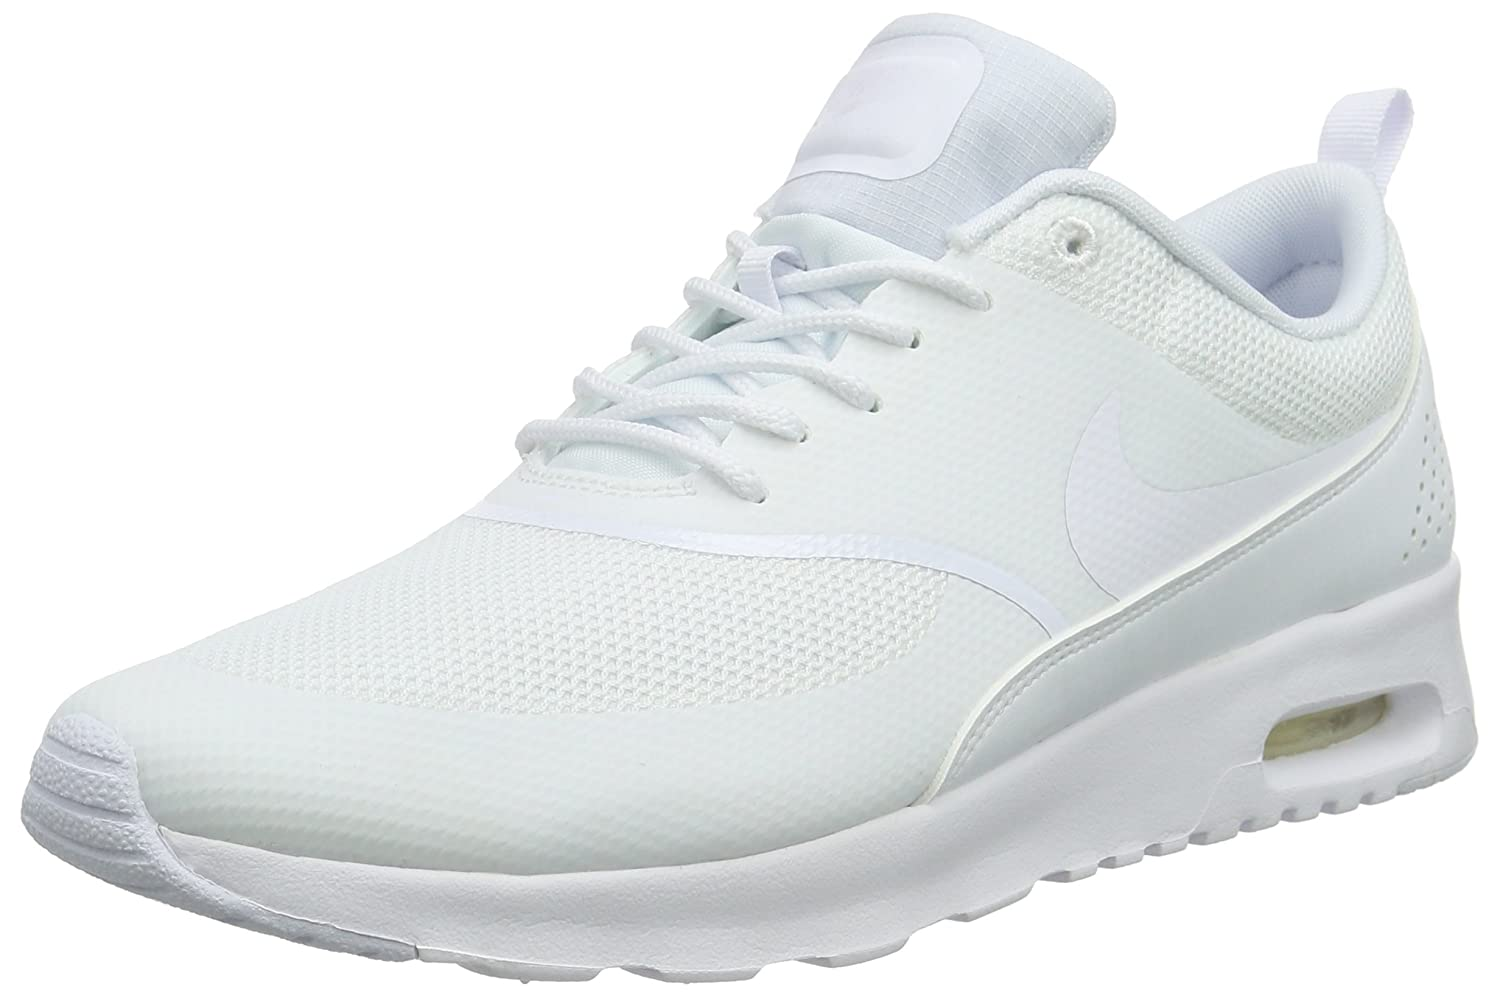 2c14f35a17a3c Nike Air Max Thea, Women Low-Top Sneakers, White (White/White), 8.5 UK (43  EU): Amazon.co.uk: Shoes & Bags